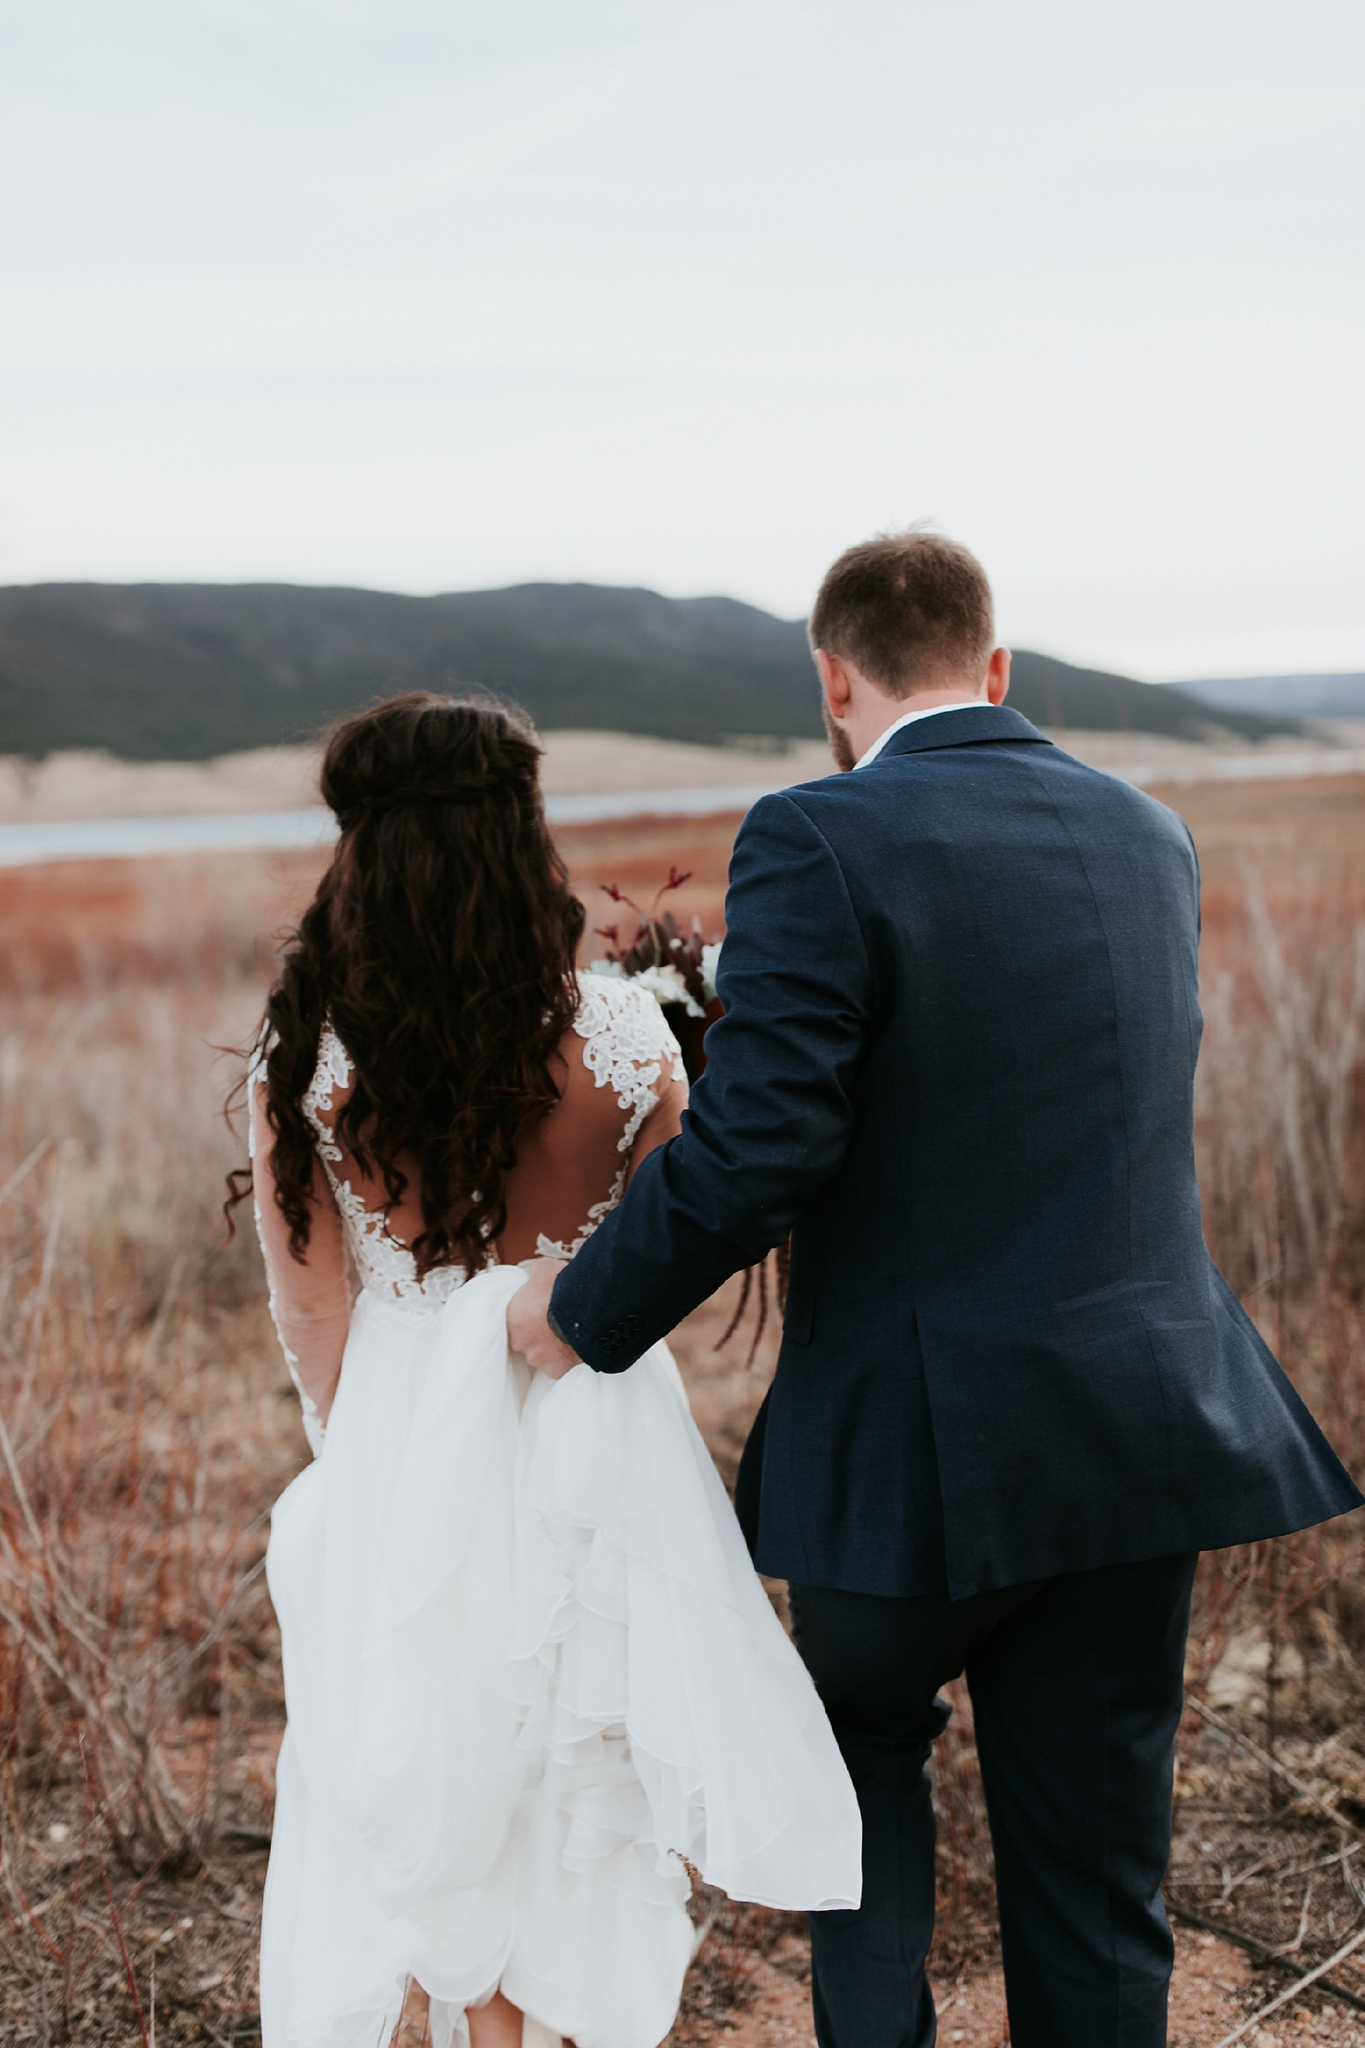 Alicia+lucia+photography+-+albuquerque+wedding+photographer+-+santa+fe+wedding+photography+-+new+mexico+wedding+photographer+-+new+mexico+wedding+-+wedding+gowns+-+bridal+gowns+-+a+line+wedding+gown_0012.jpg